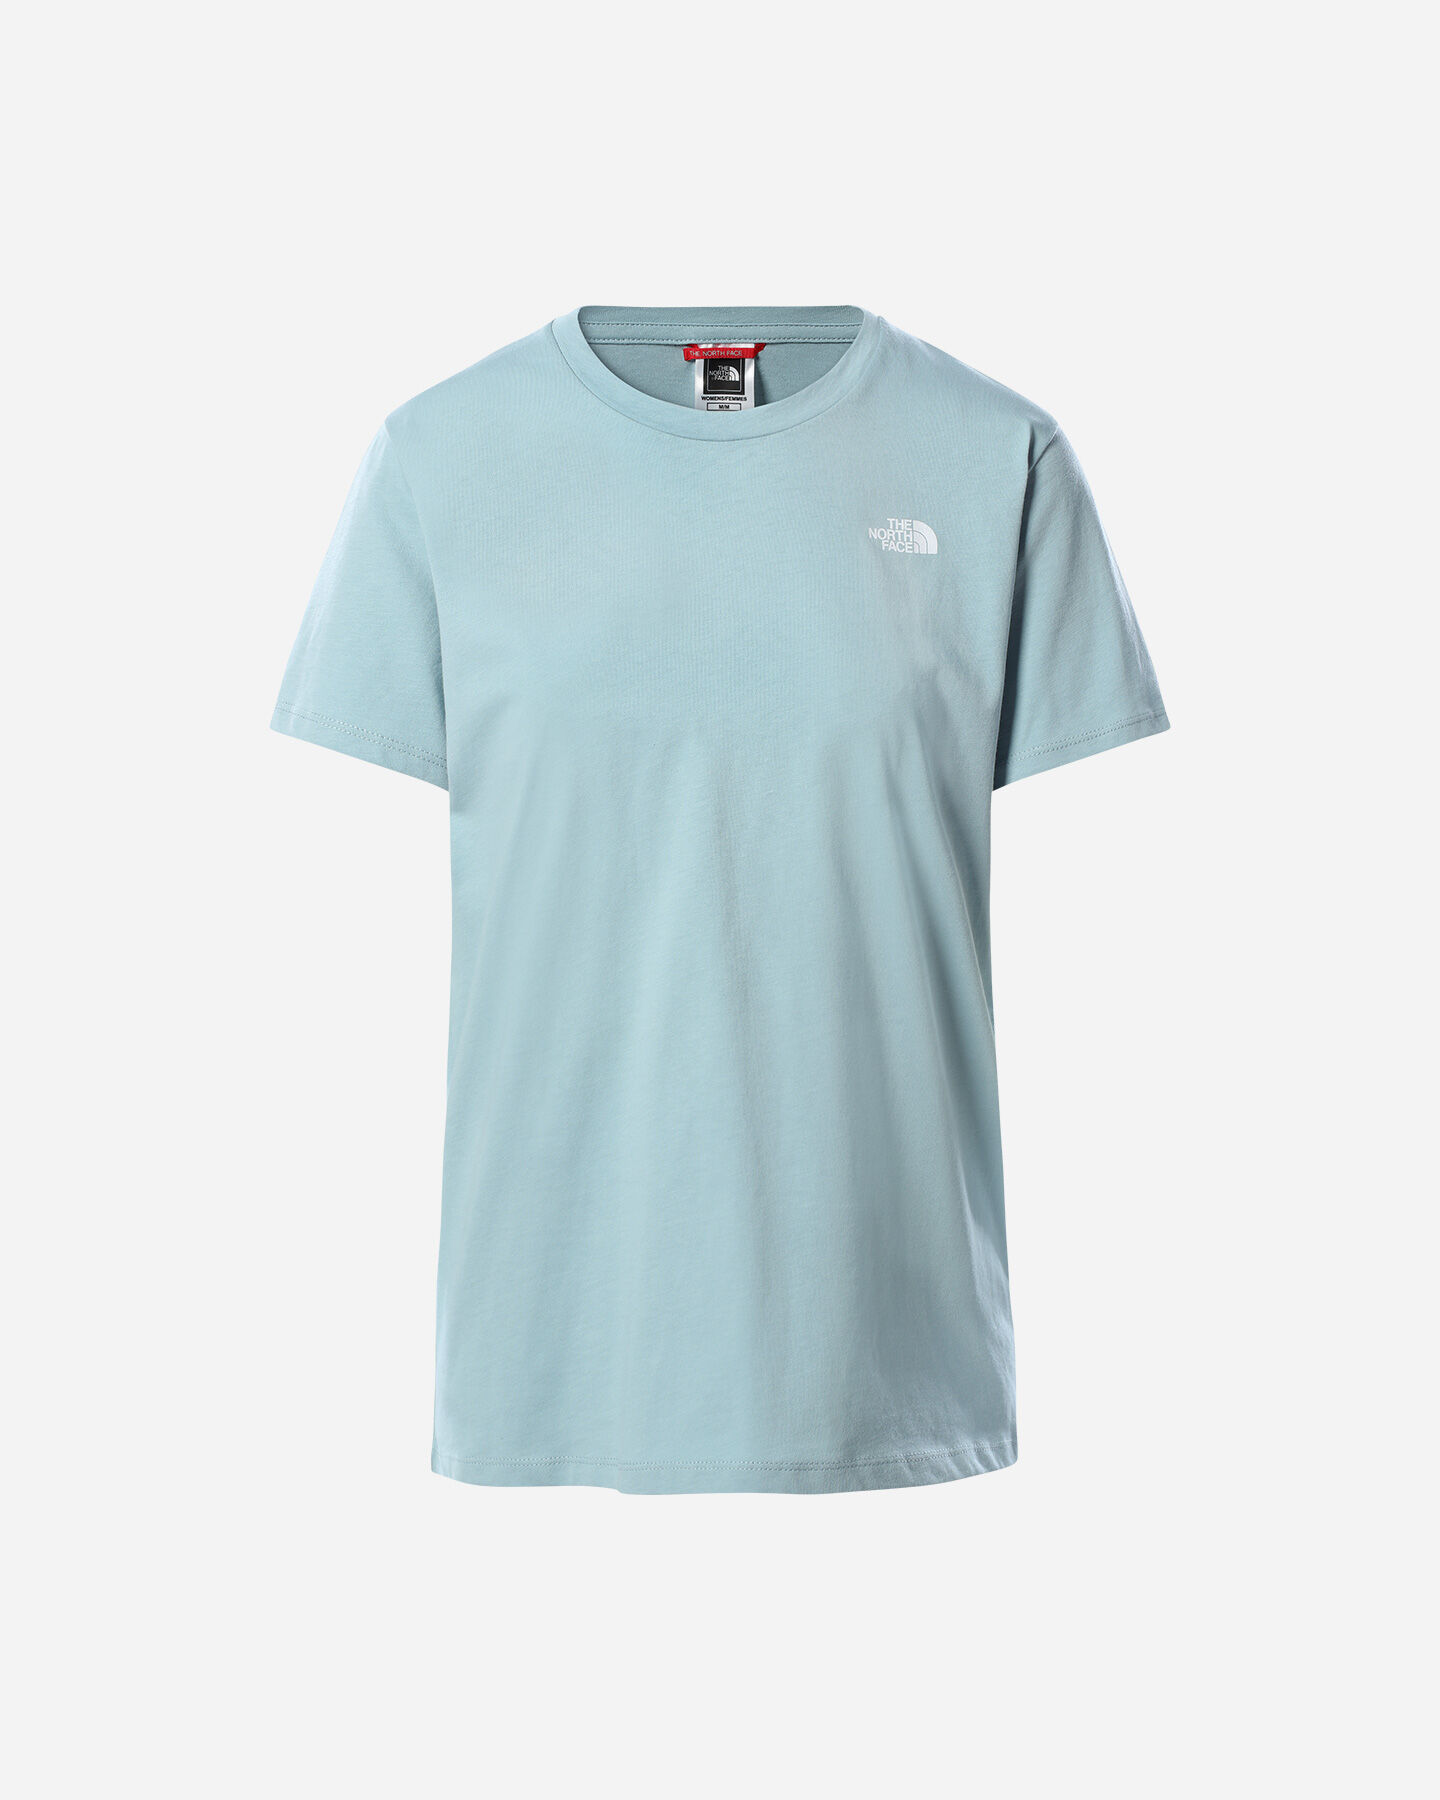 T-Shirt THE NORTH FACE CAMPAY BACK LOGO W S5296487 scatto 0